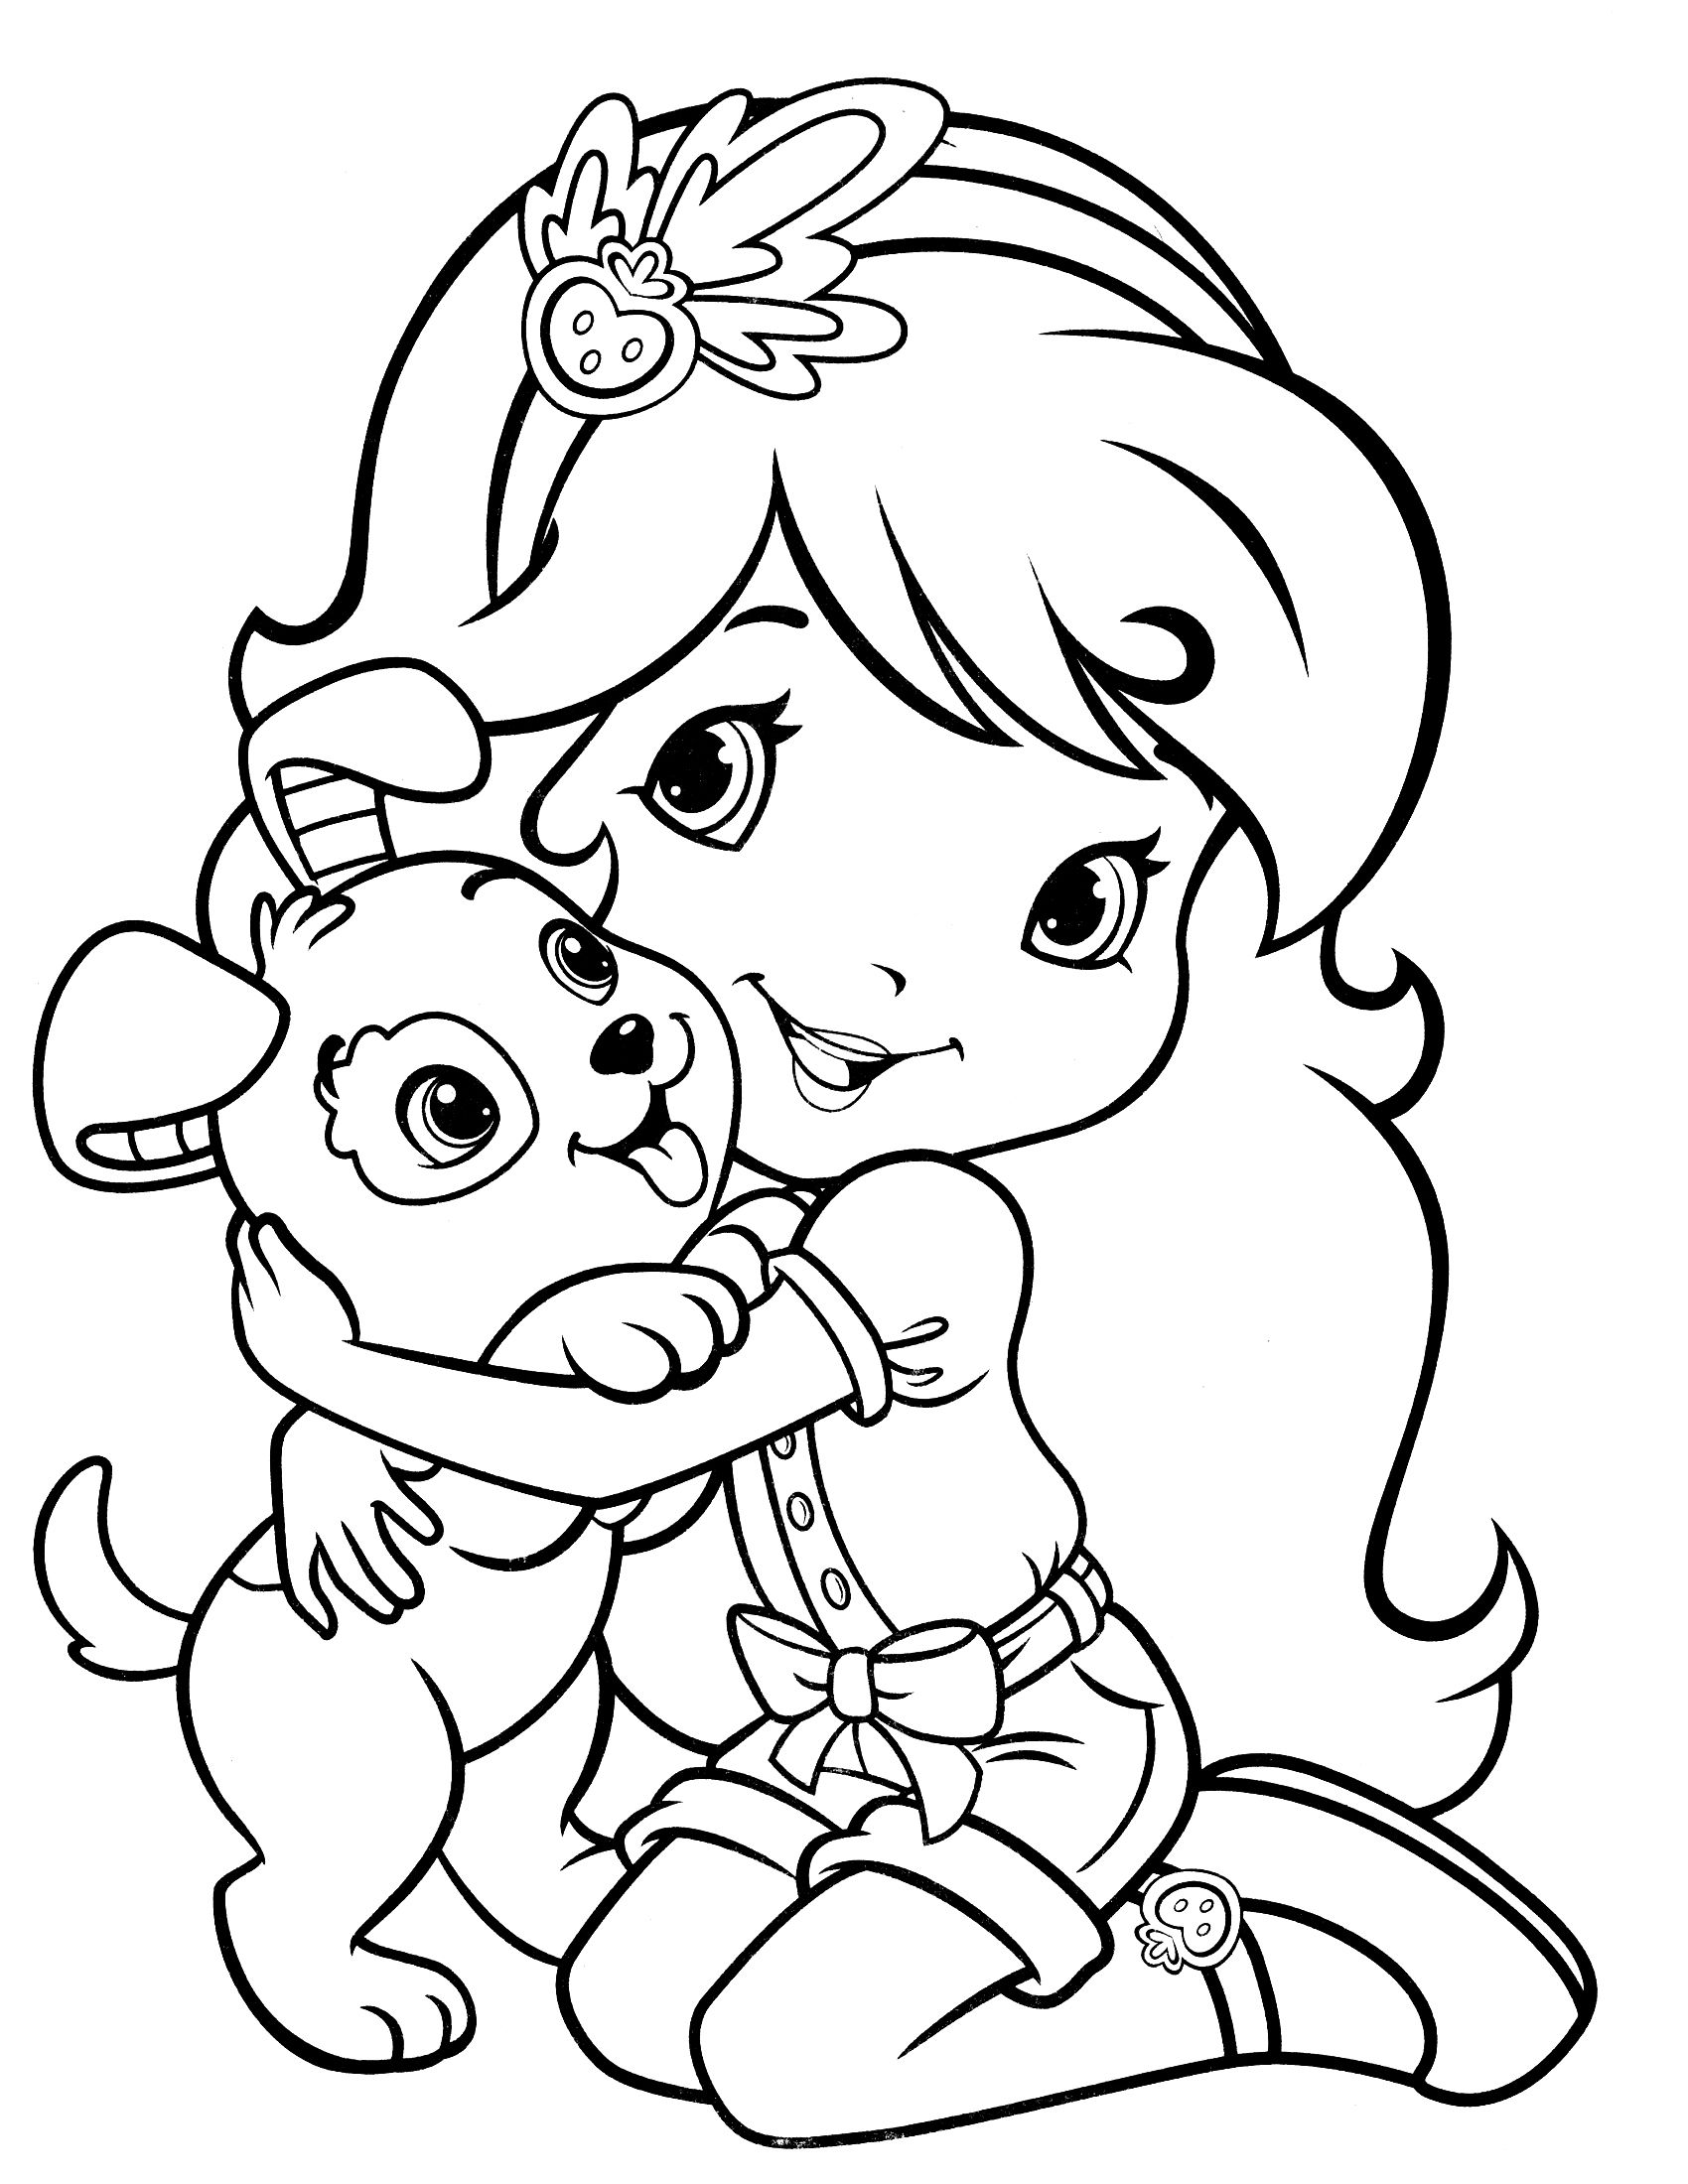 strawberry-shortcake-coloring-page-73.jpg (1700×2200) | COLORING ...